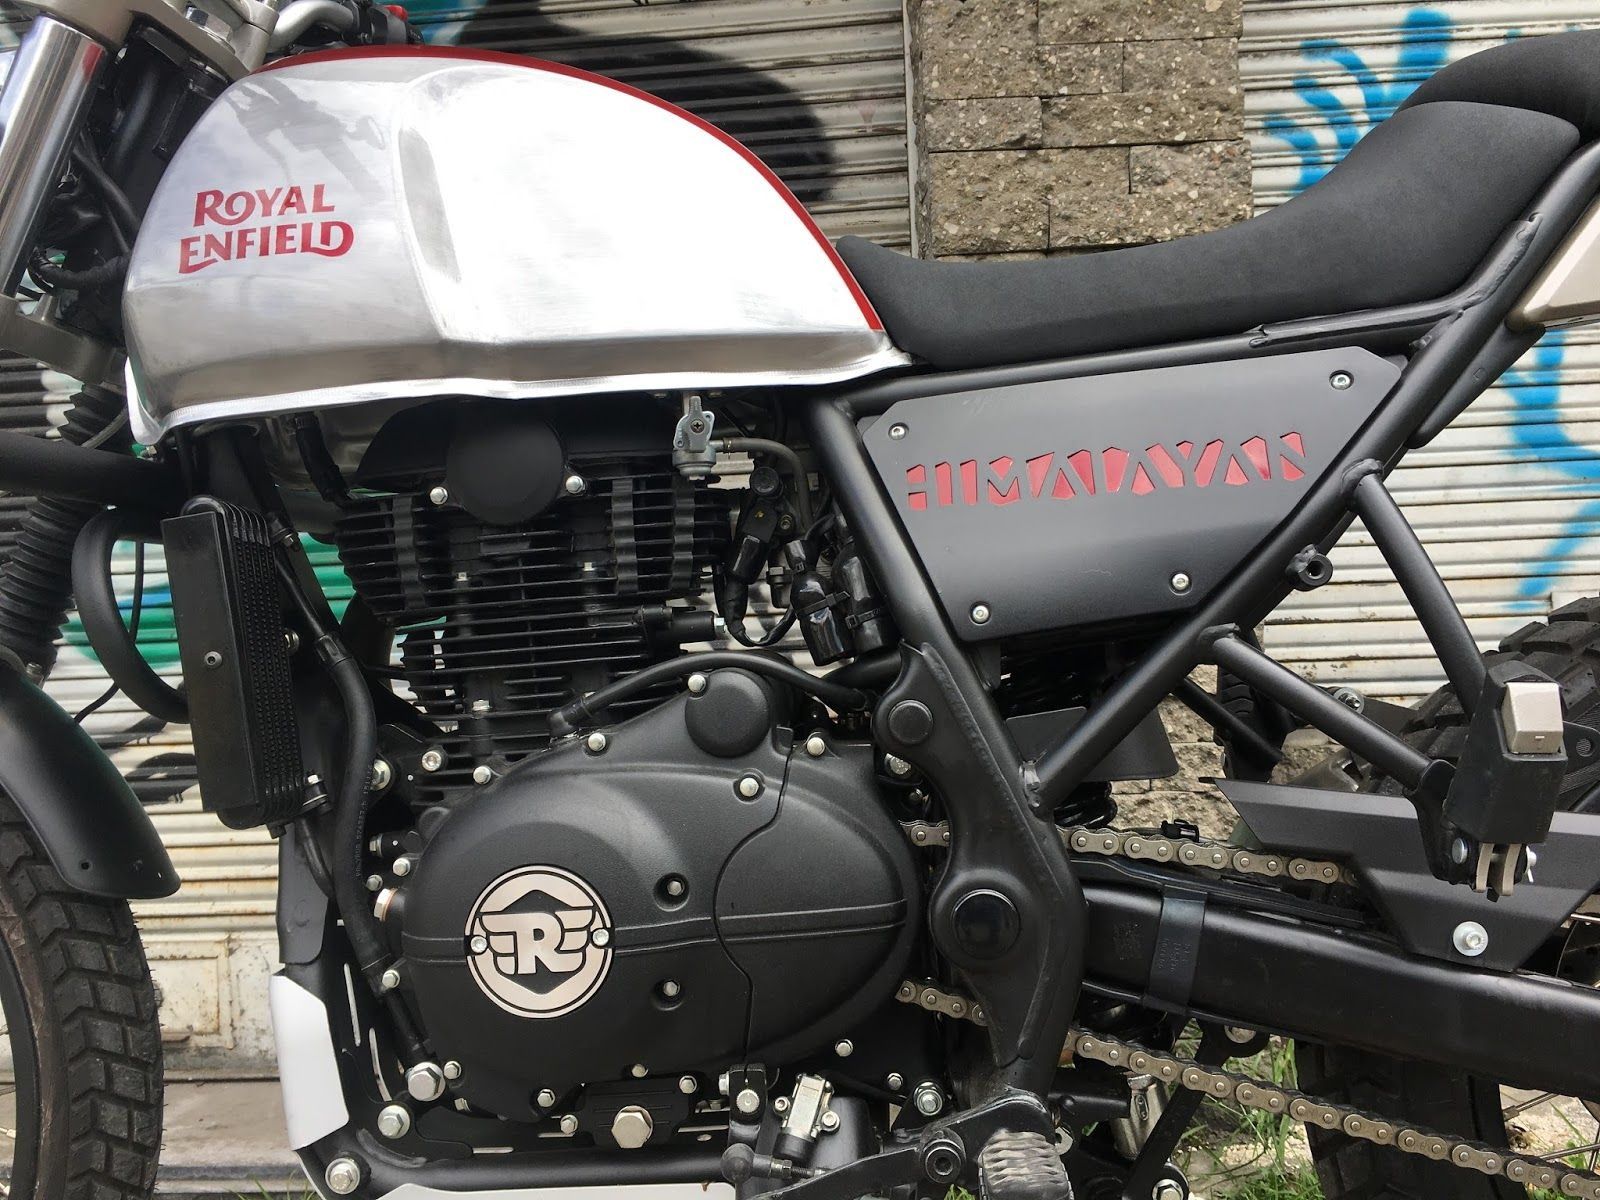 Himalayan Royal Enfield Image By Yeoggessh V On Enfield Himalayan